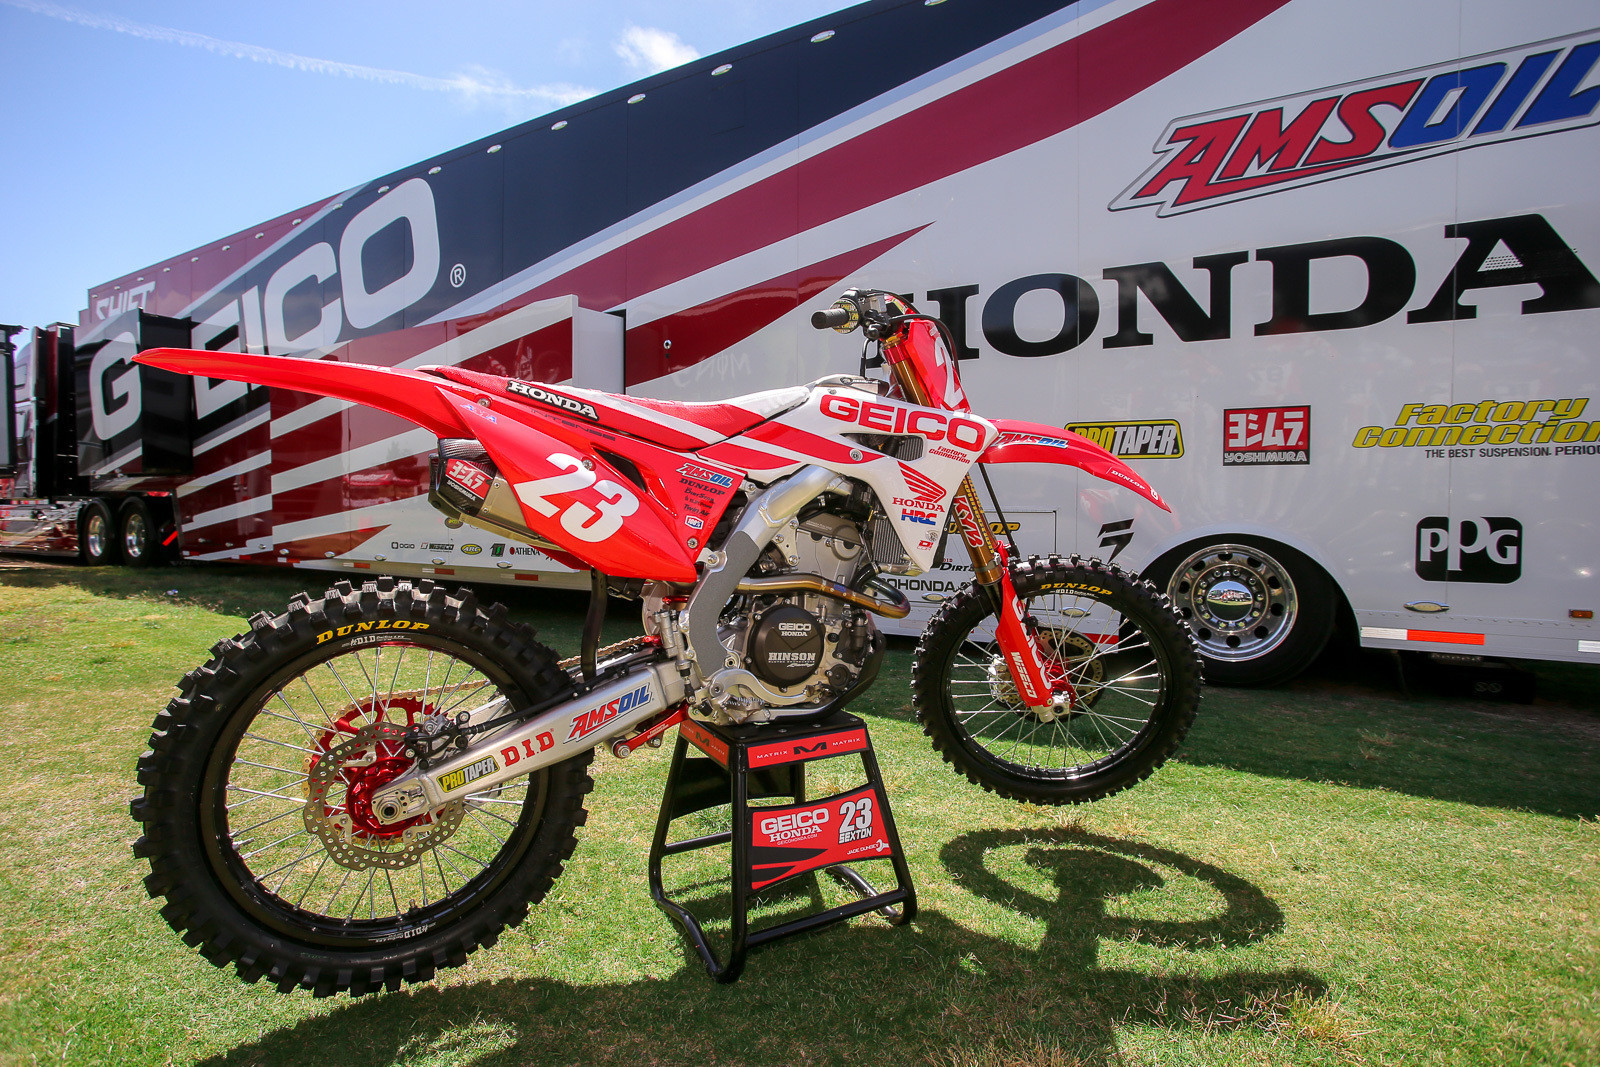 The GEICO Honda guys did up a special bike for Chase Sexton this weekend, which showed off the newly acquired red plates pretty nicely.